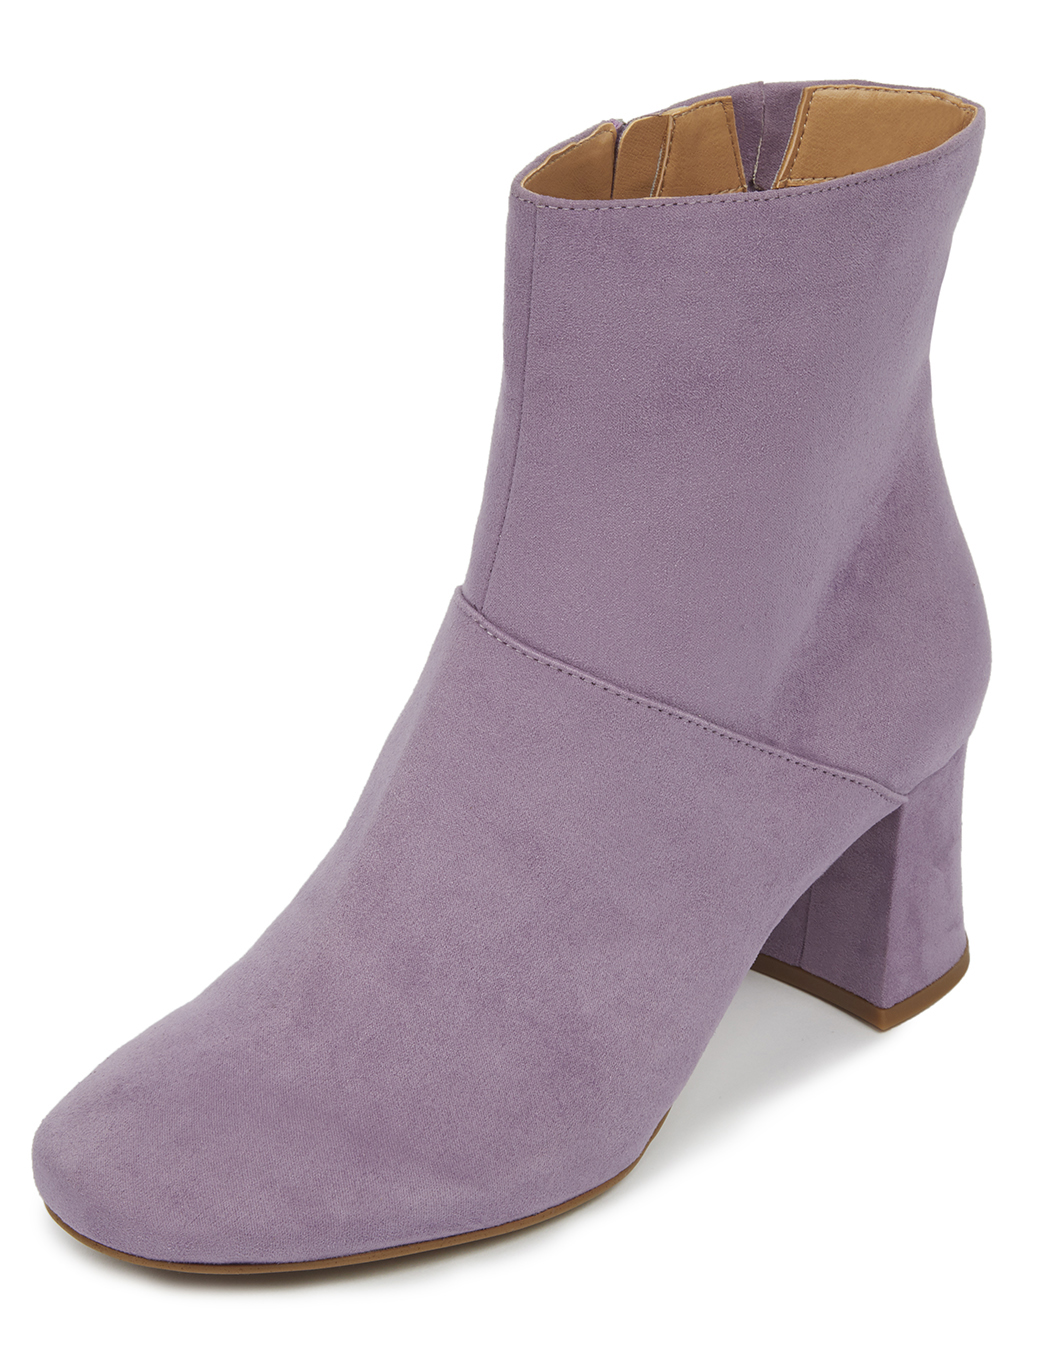 Millie Heeled Bootie